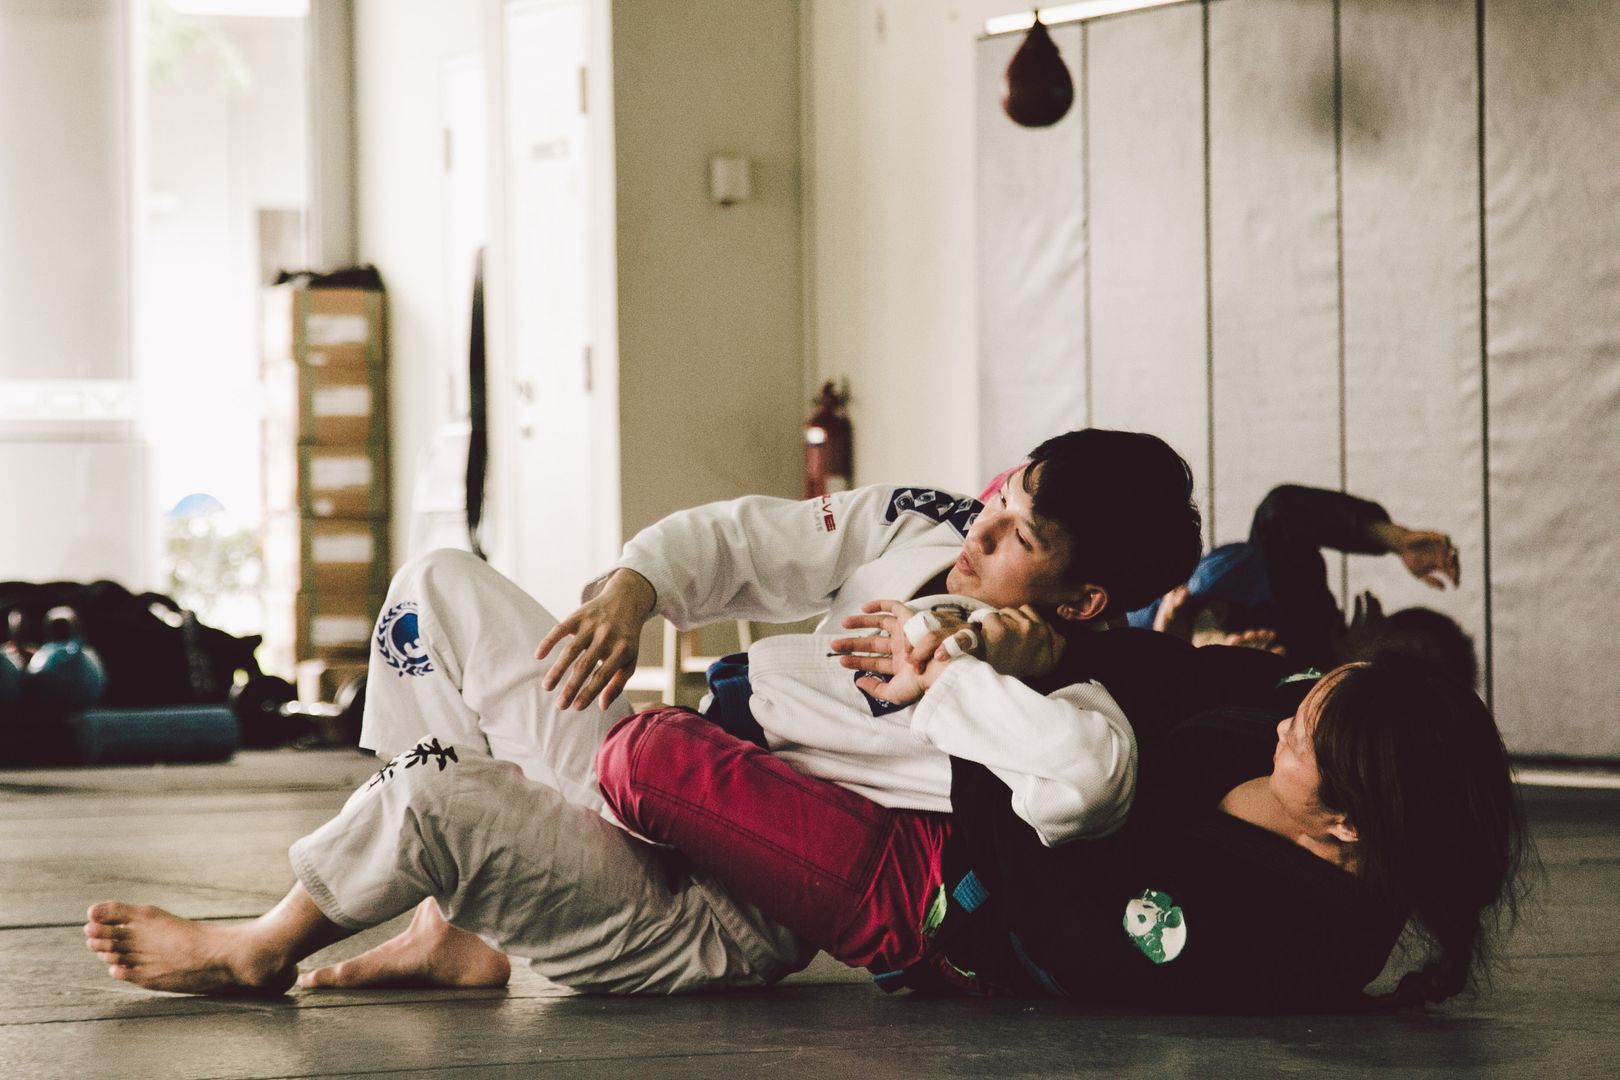 BJJ enables a smaller person to overcome a stronger, bigger opponent.